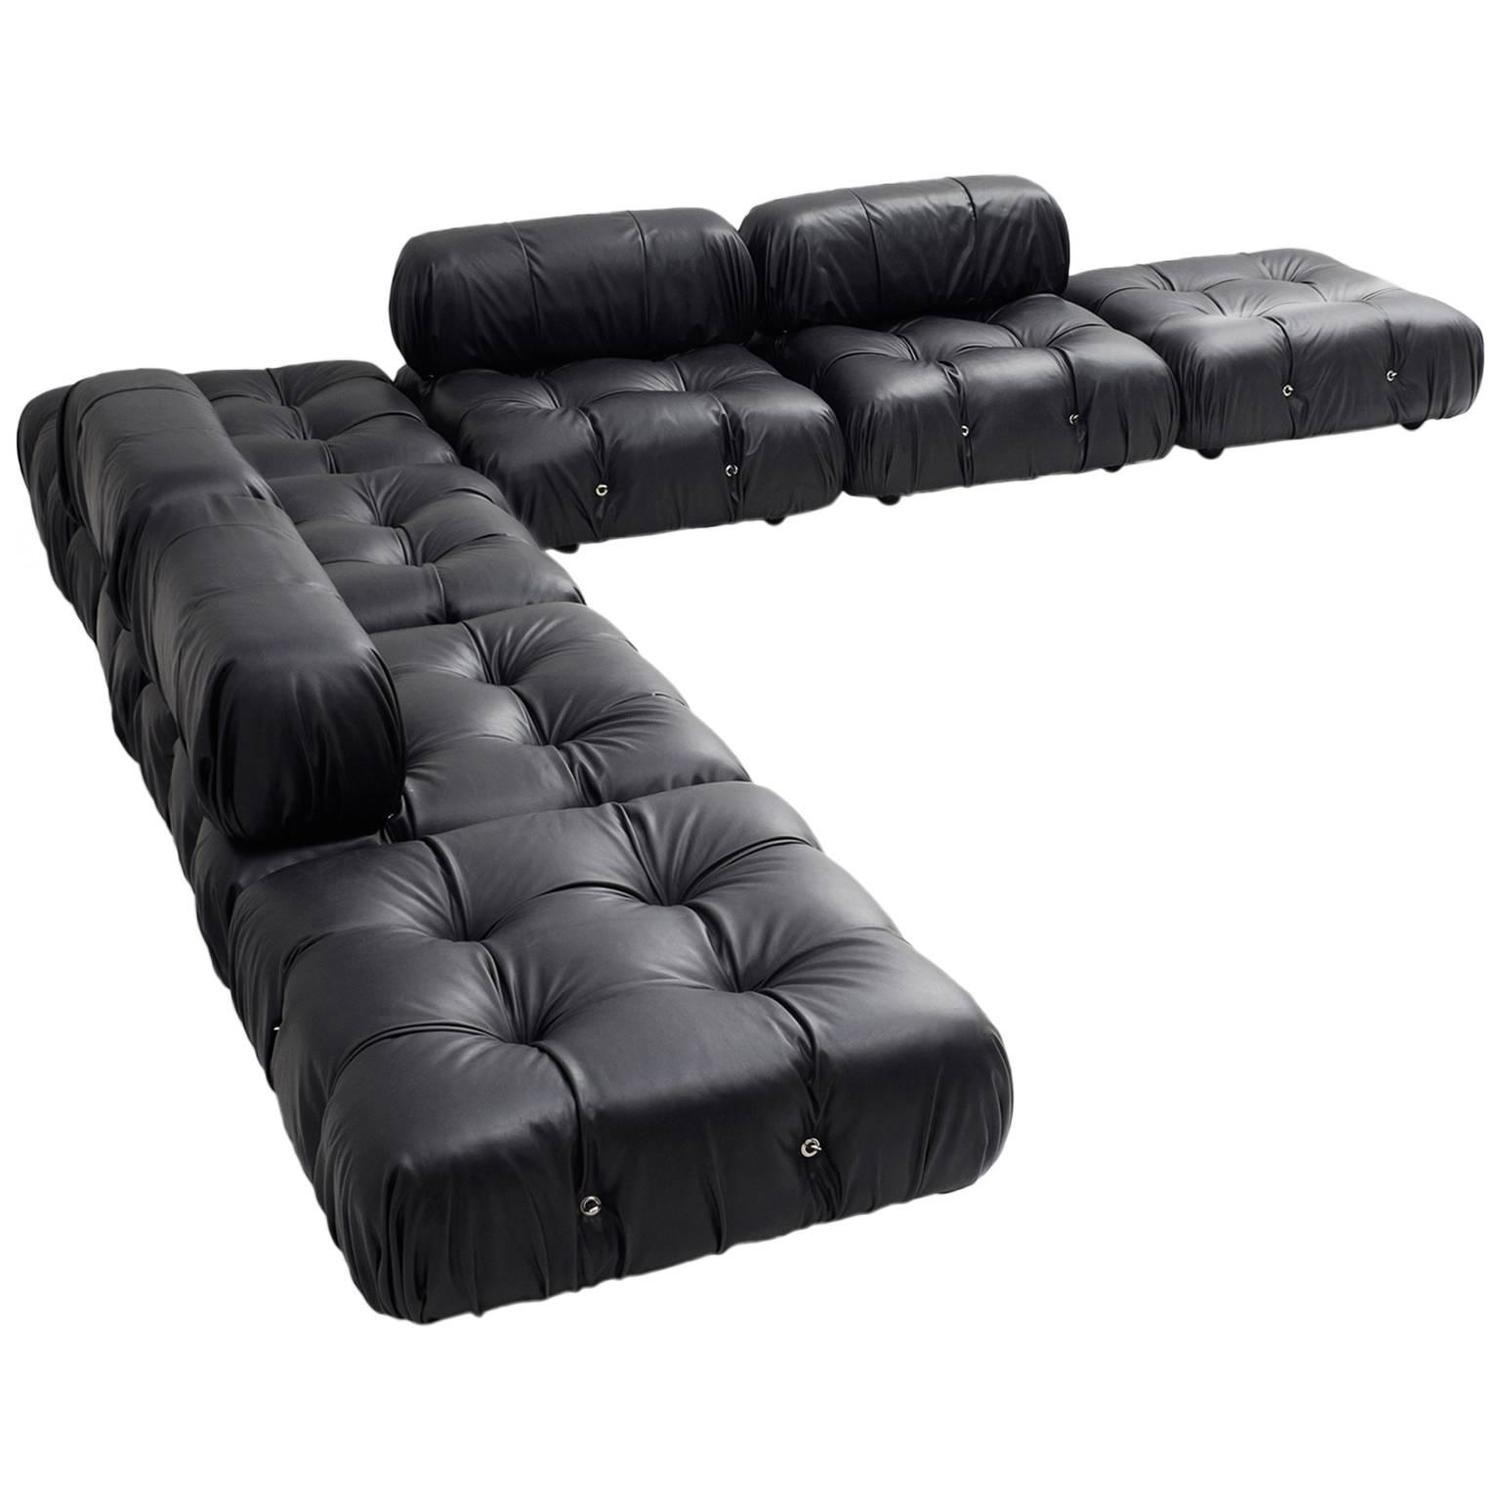 Mario Bellini Modular Sofa 'camaleonda' At 1Stdibs For Bellini Sofas (Image 7 of 20)